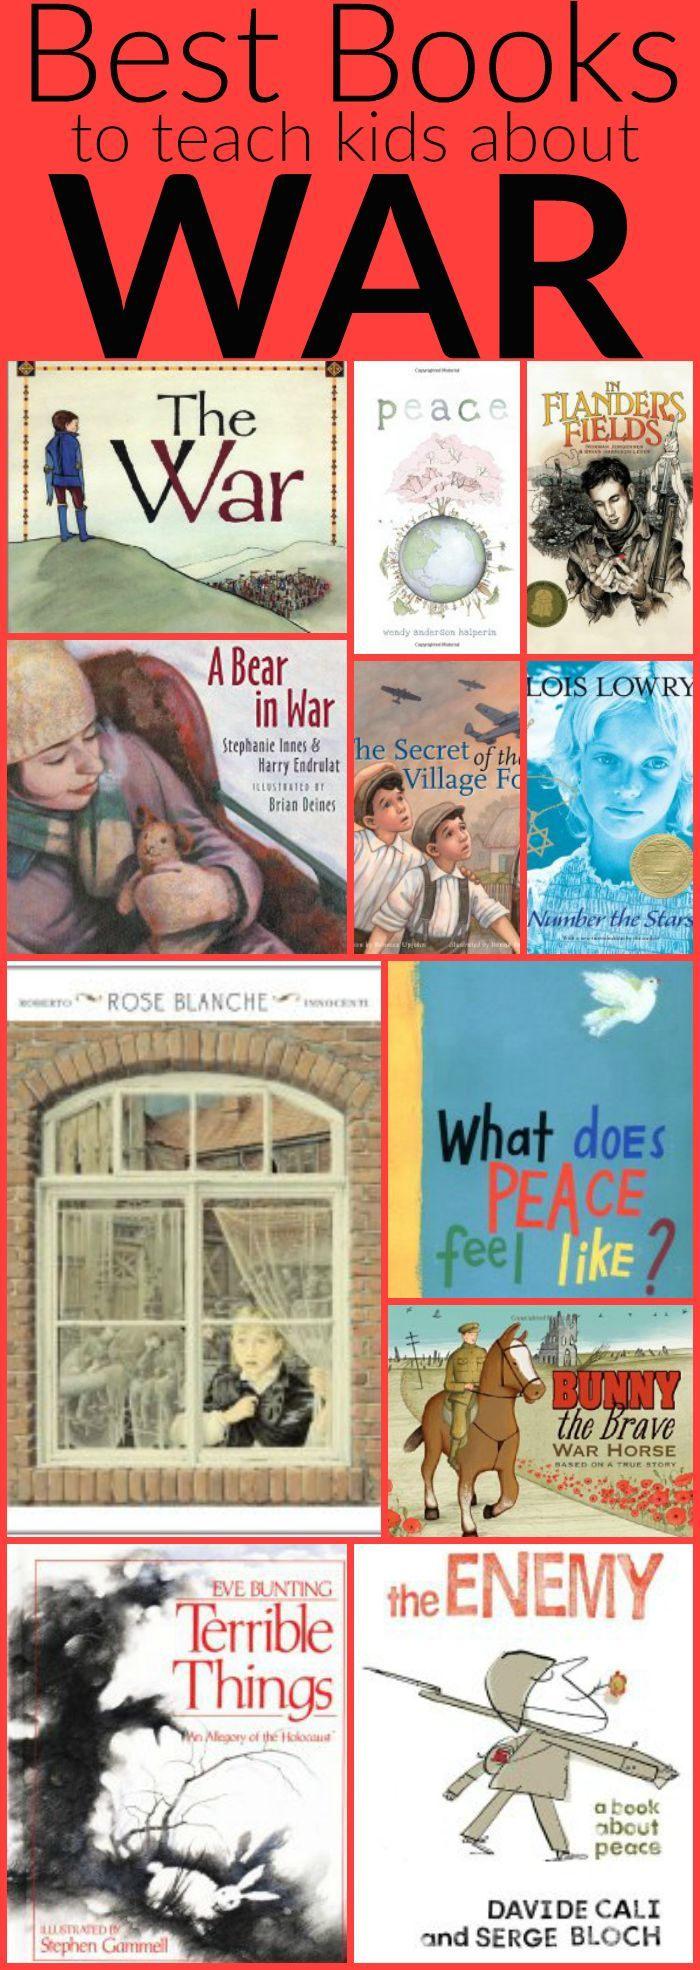 An amazing list of powerful kids books to teach kids about peace, war and remembrance. Perfect for Veteran's Day or Remembrance Day! {ThisLibraryLove}